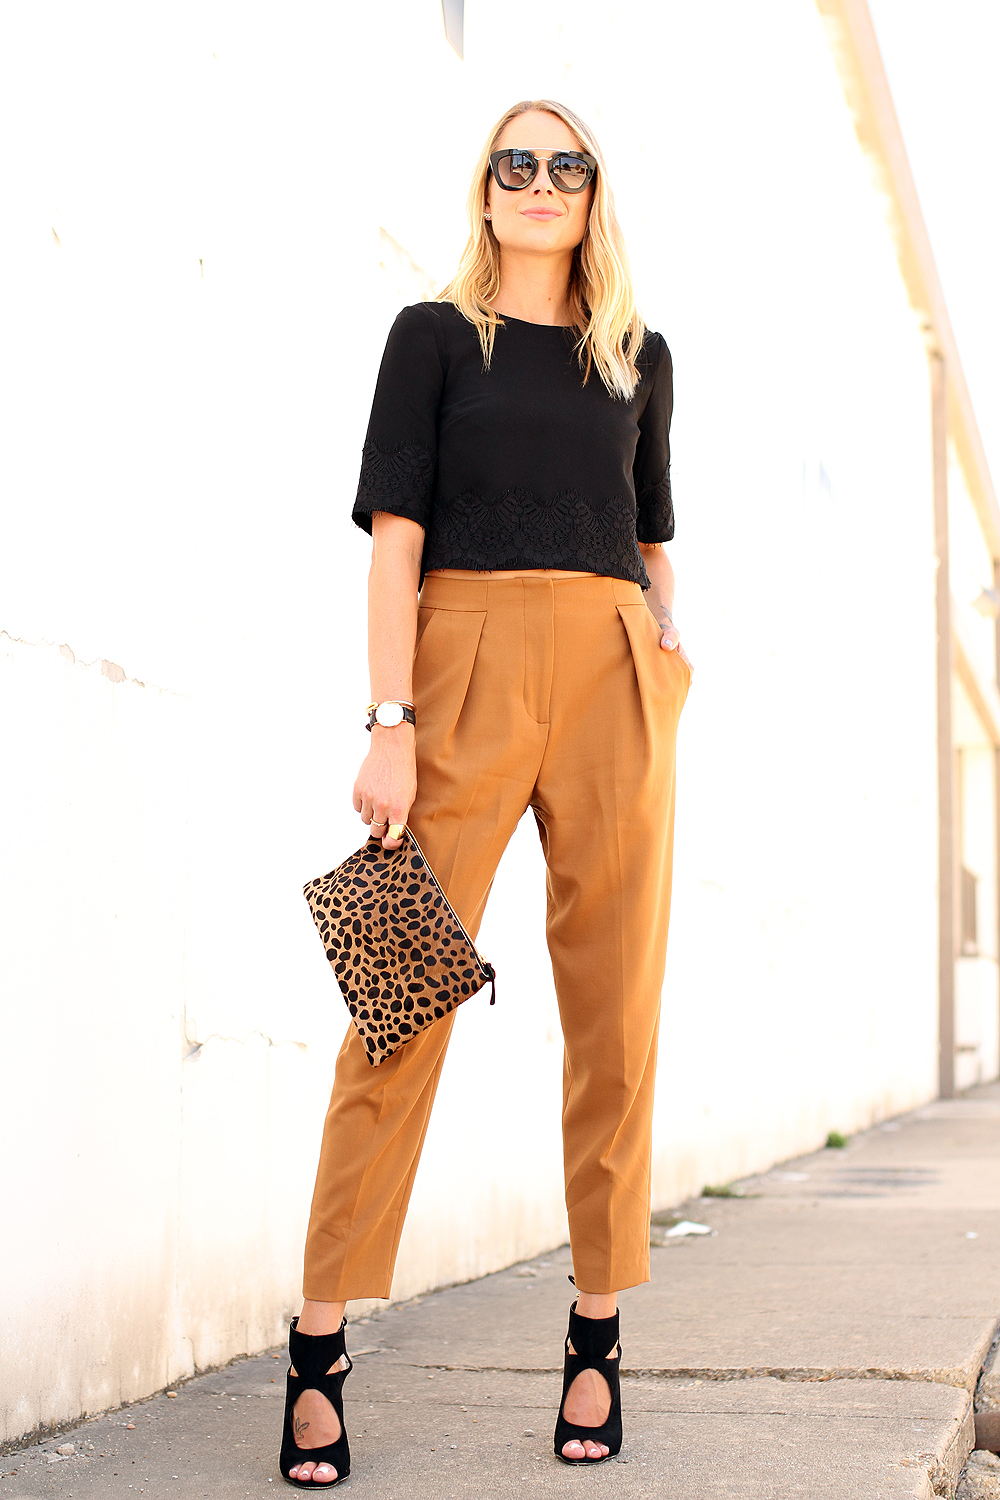 fashion-jackson-french-connection-trousers-french-connection-lace-crop-top-aquazzura-sexy-thing-similar-heels-clare-v-leopard-clutch-prada-sunglasses-daniel-wellington-watch